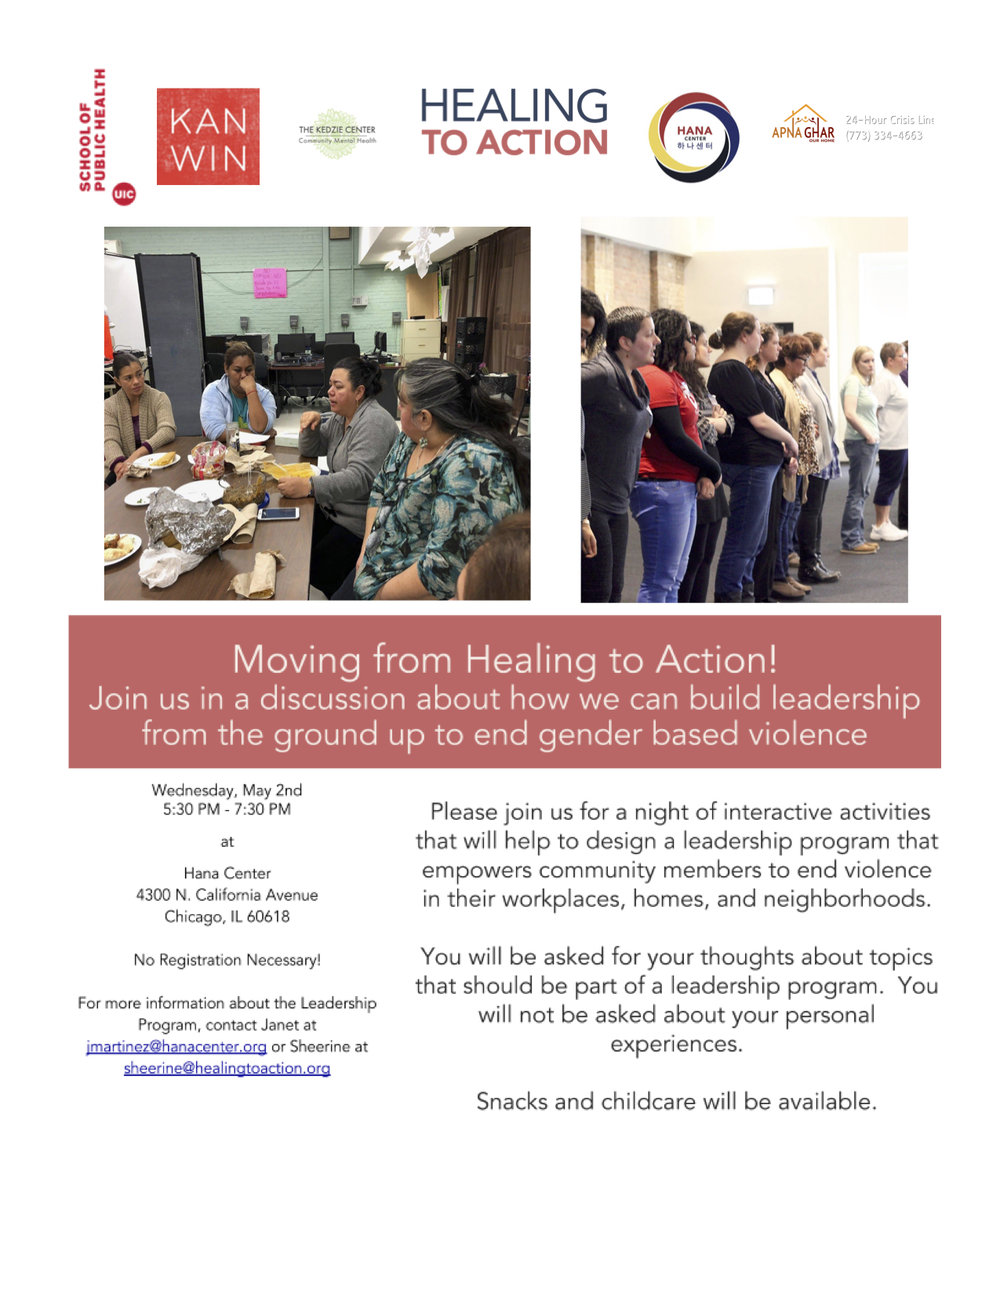 Healing to Action Flyer.jpg